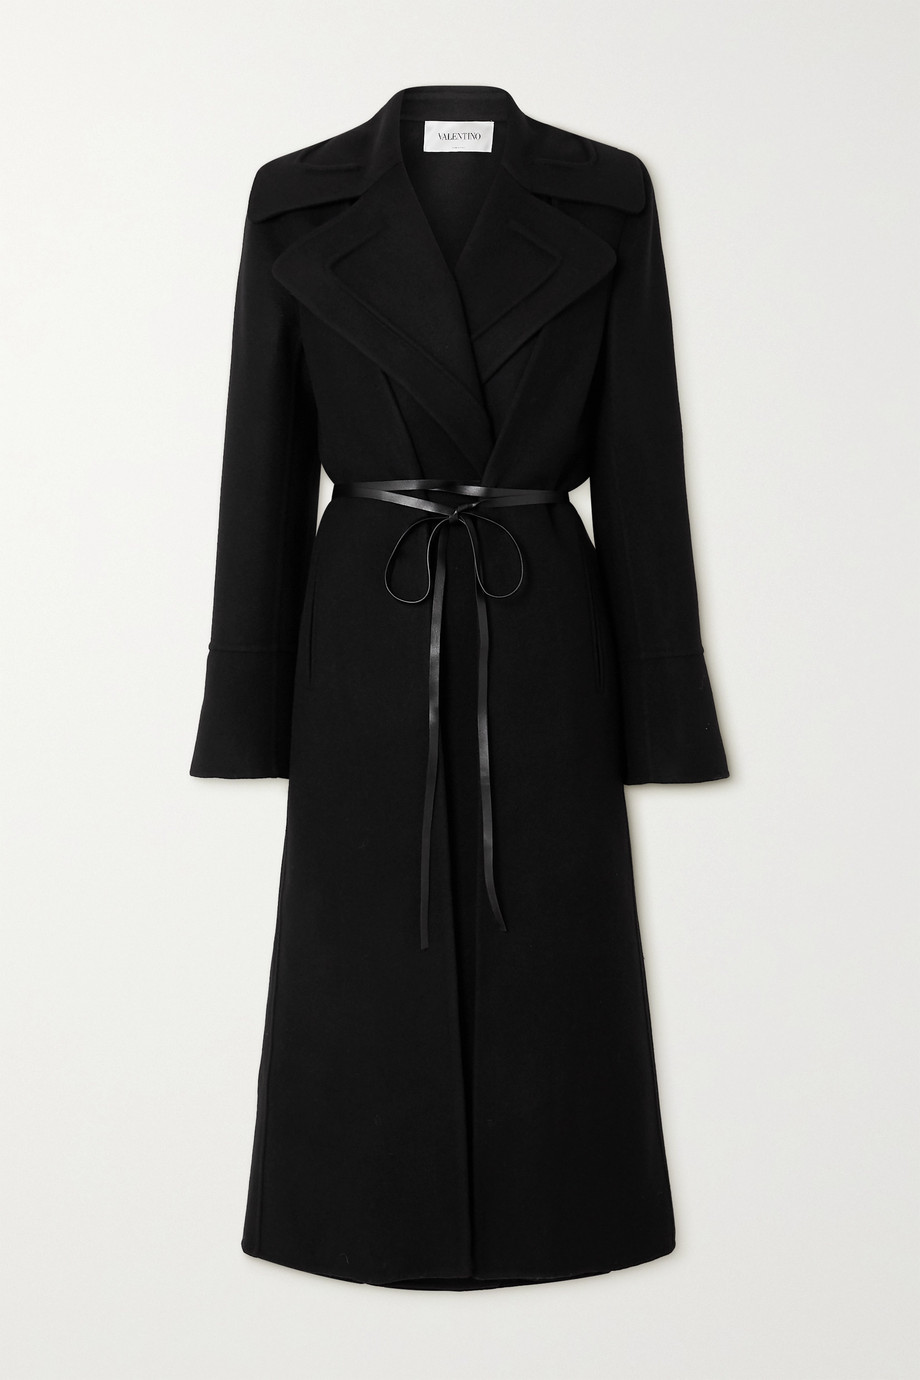 Valentino Belted double-breasted wool and silk-crepe de chine coat